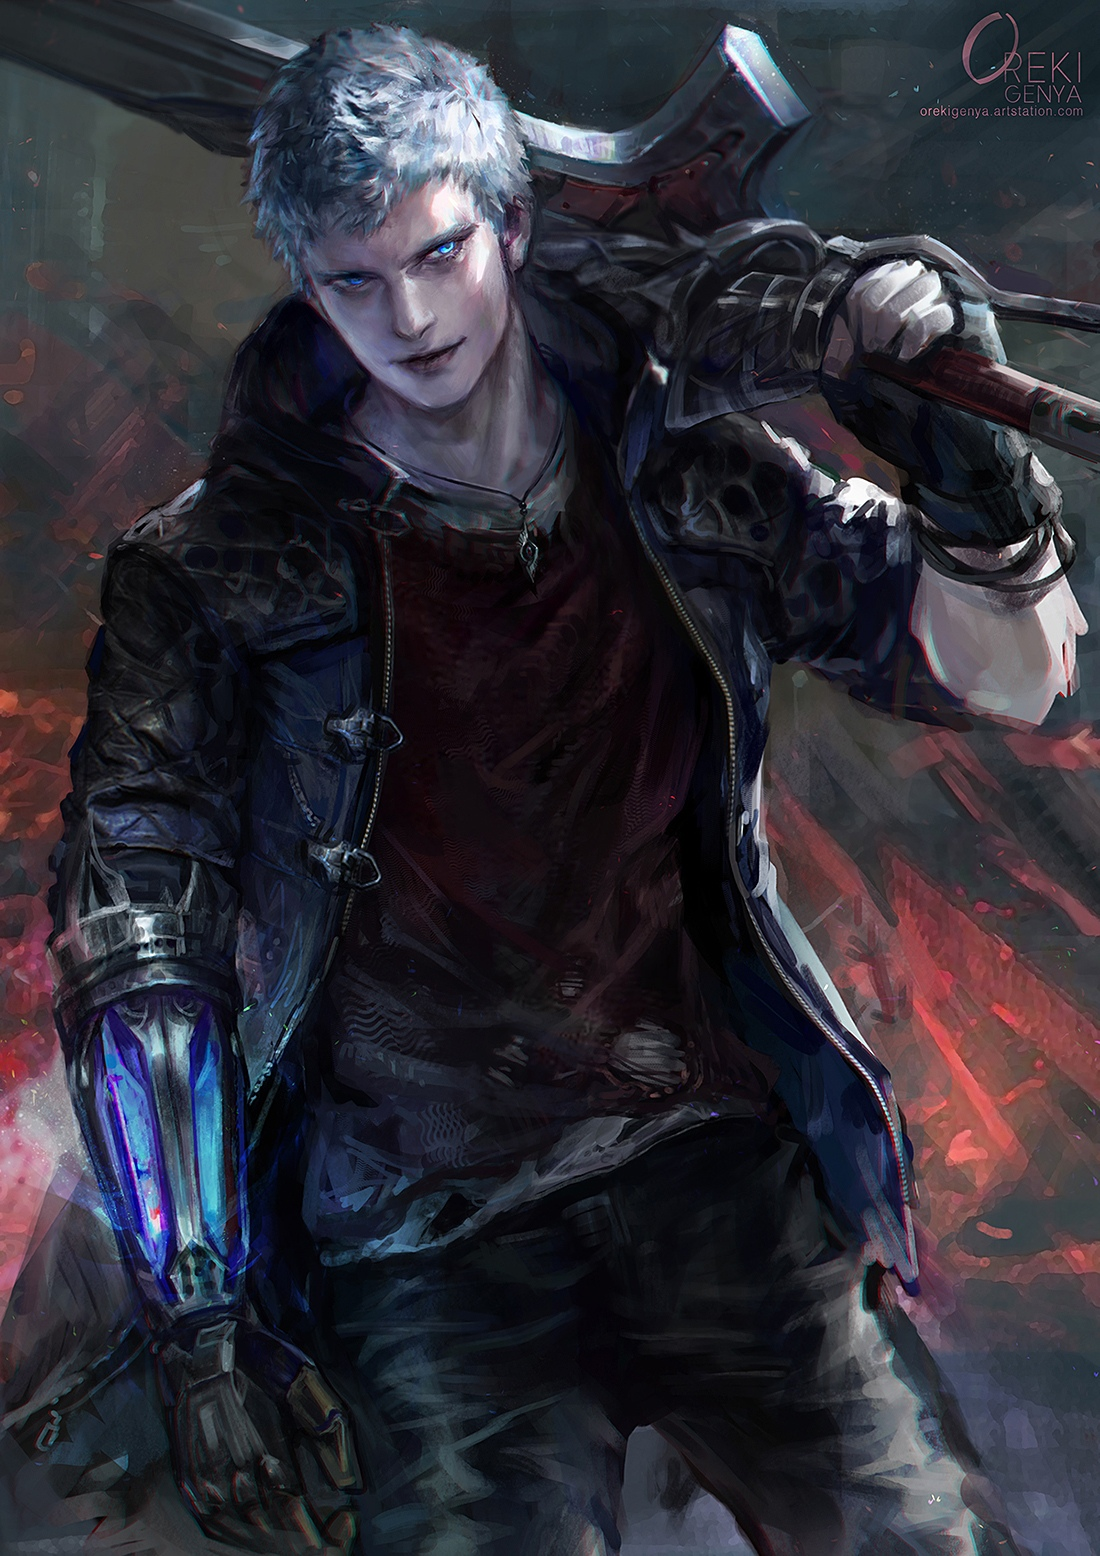 dAhIALS8pa4.jpg - Devil May Cry 5